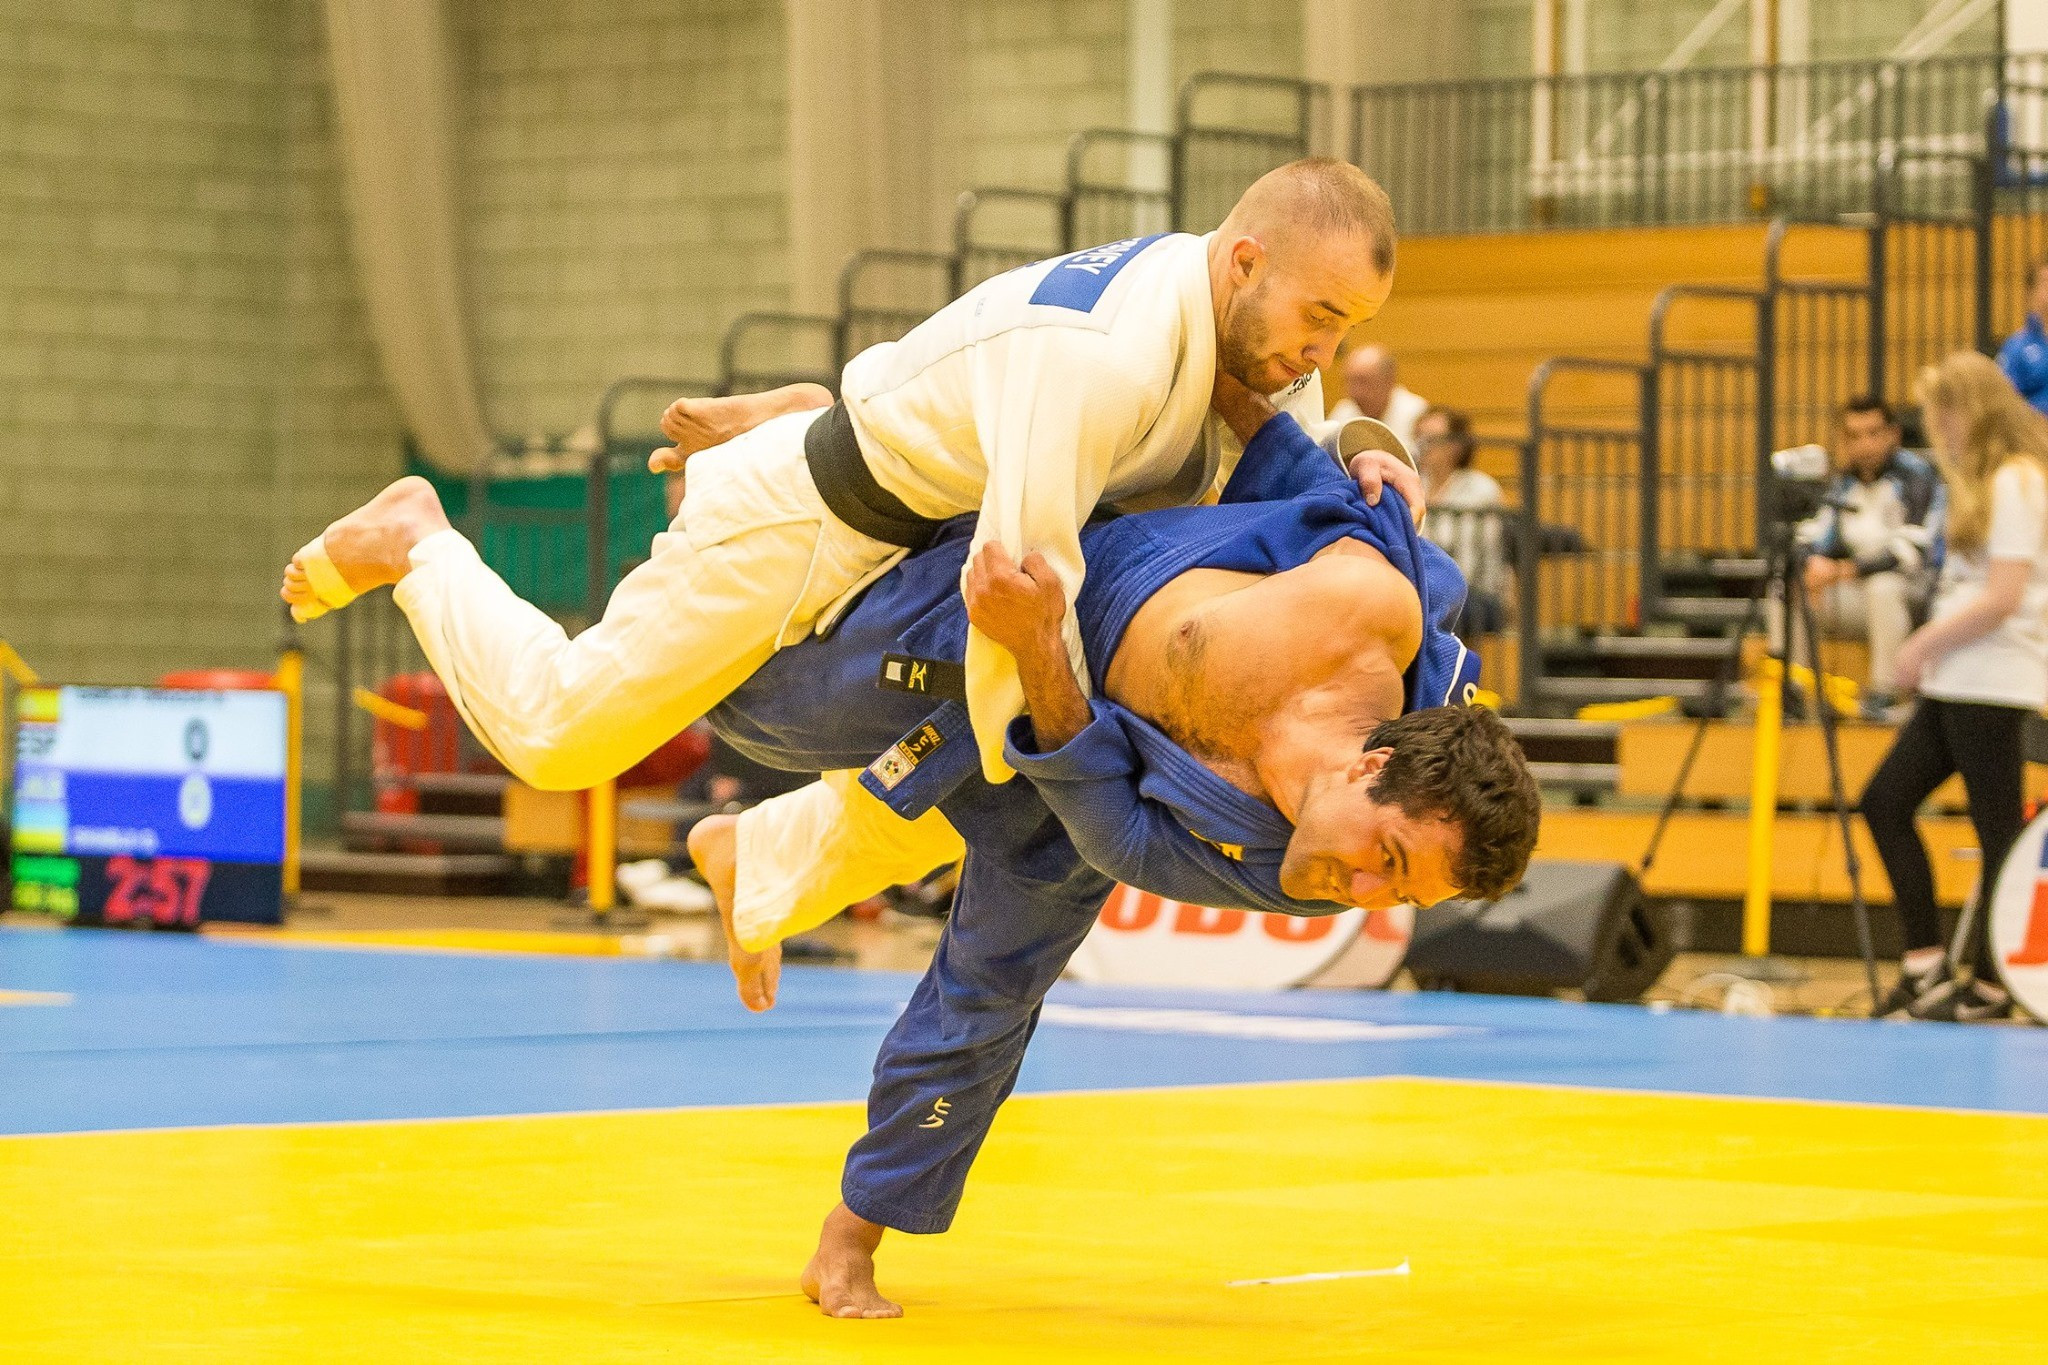 Today was the first of three days of competition ©British Judo Association/Facebook